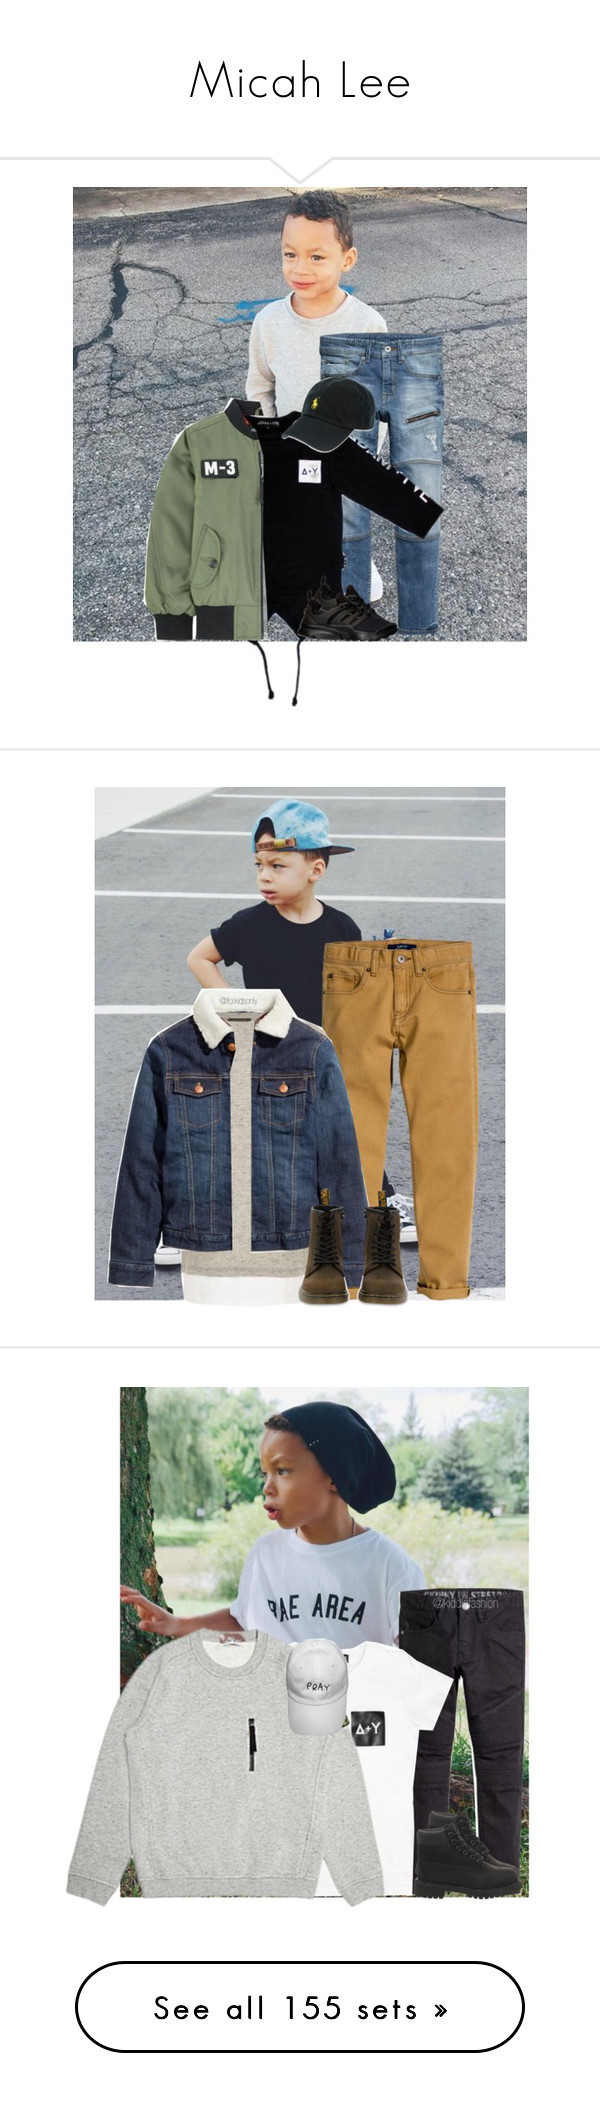 """""""Micah Lee"""" by kiddiefashion ❤ liked on Polyvore featuring Polo Ralph Lauren, Dr. Martens, Timberland, Scotch & Soda, Barneys New York, adidas, Loungefly, New Balance, Ralph Lauren and Haus of JR"""